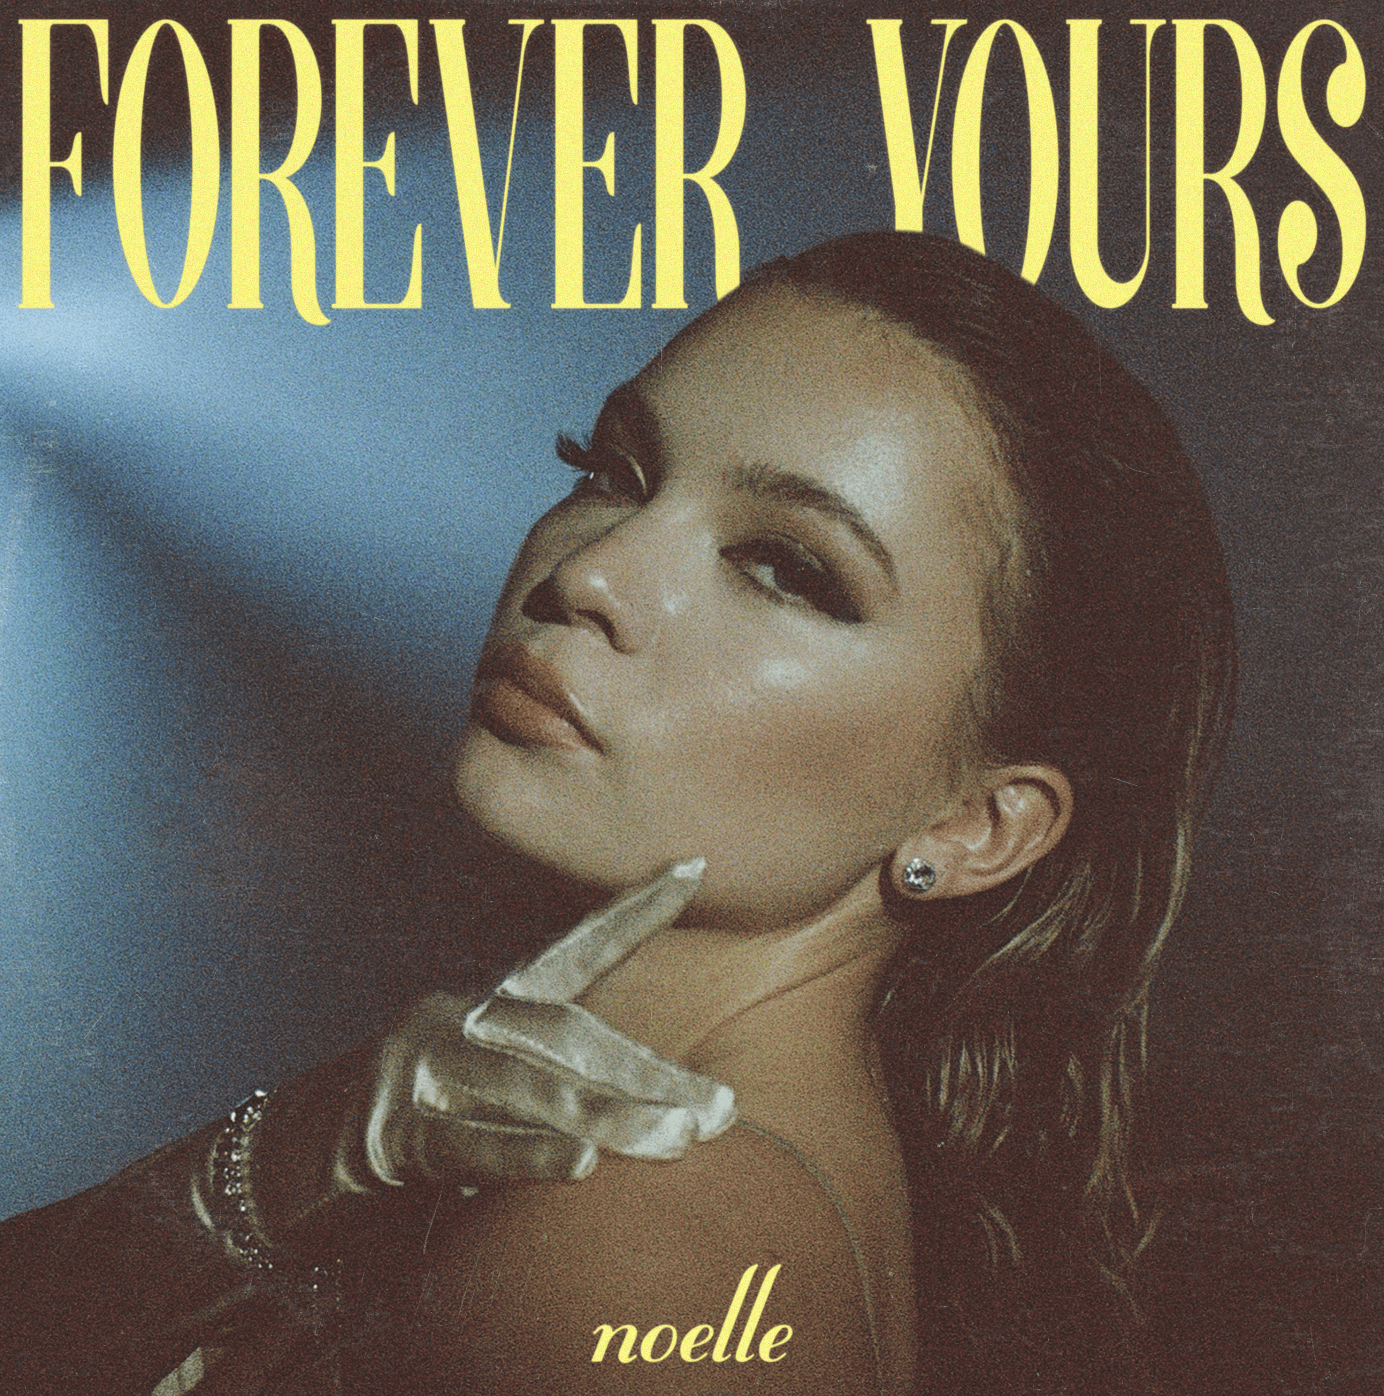 Canadian rising star noelle releases jazzy new single 'Forever Yours'